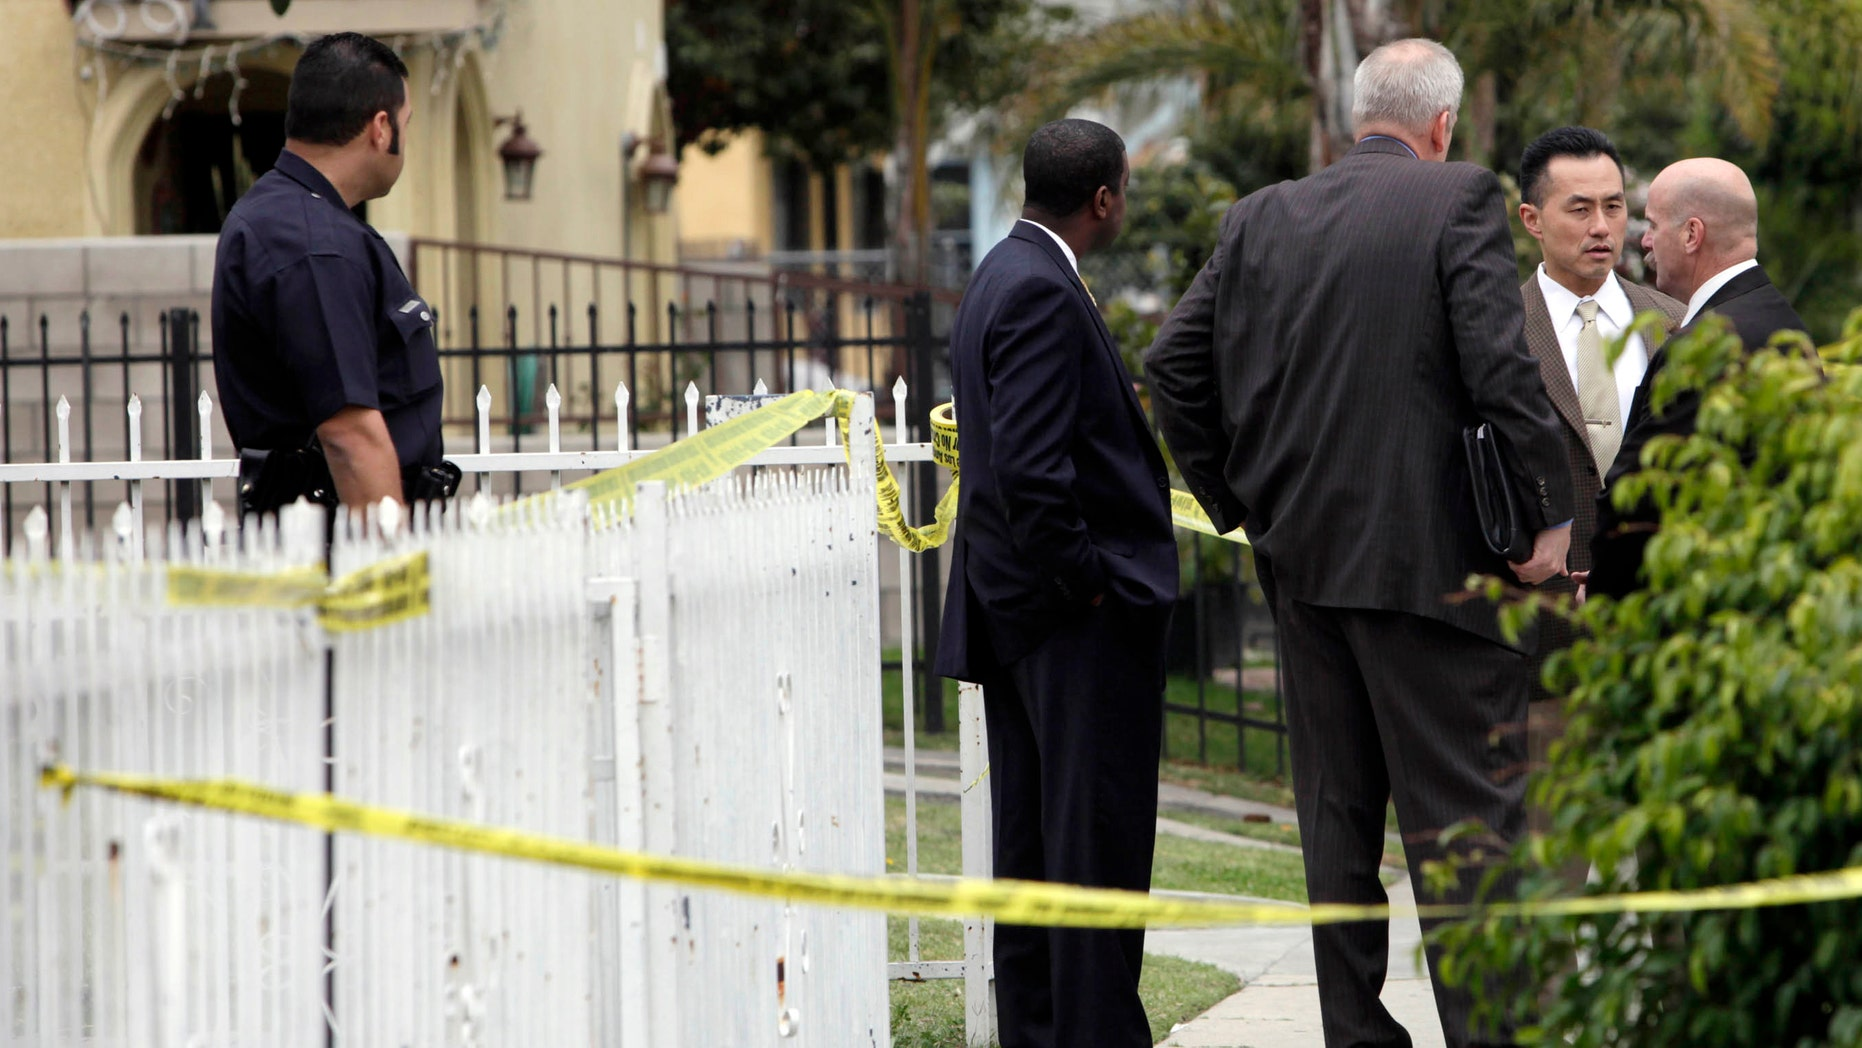 Los Angeles police investigators are shown at the site of a drowning Wednesday Feb. 15, 2012 in Los Angeles.  A Los Angeles mother has been detained after the drowning death of a 1-year-old girl and the critical injury of a 5-year-old girl.    (AP Photo/Nick Ut)